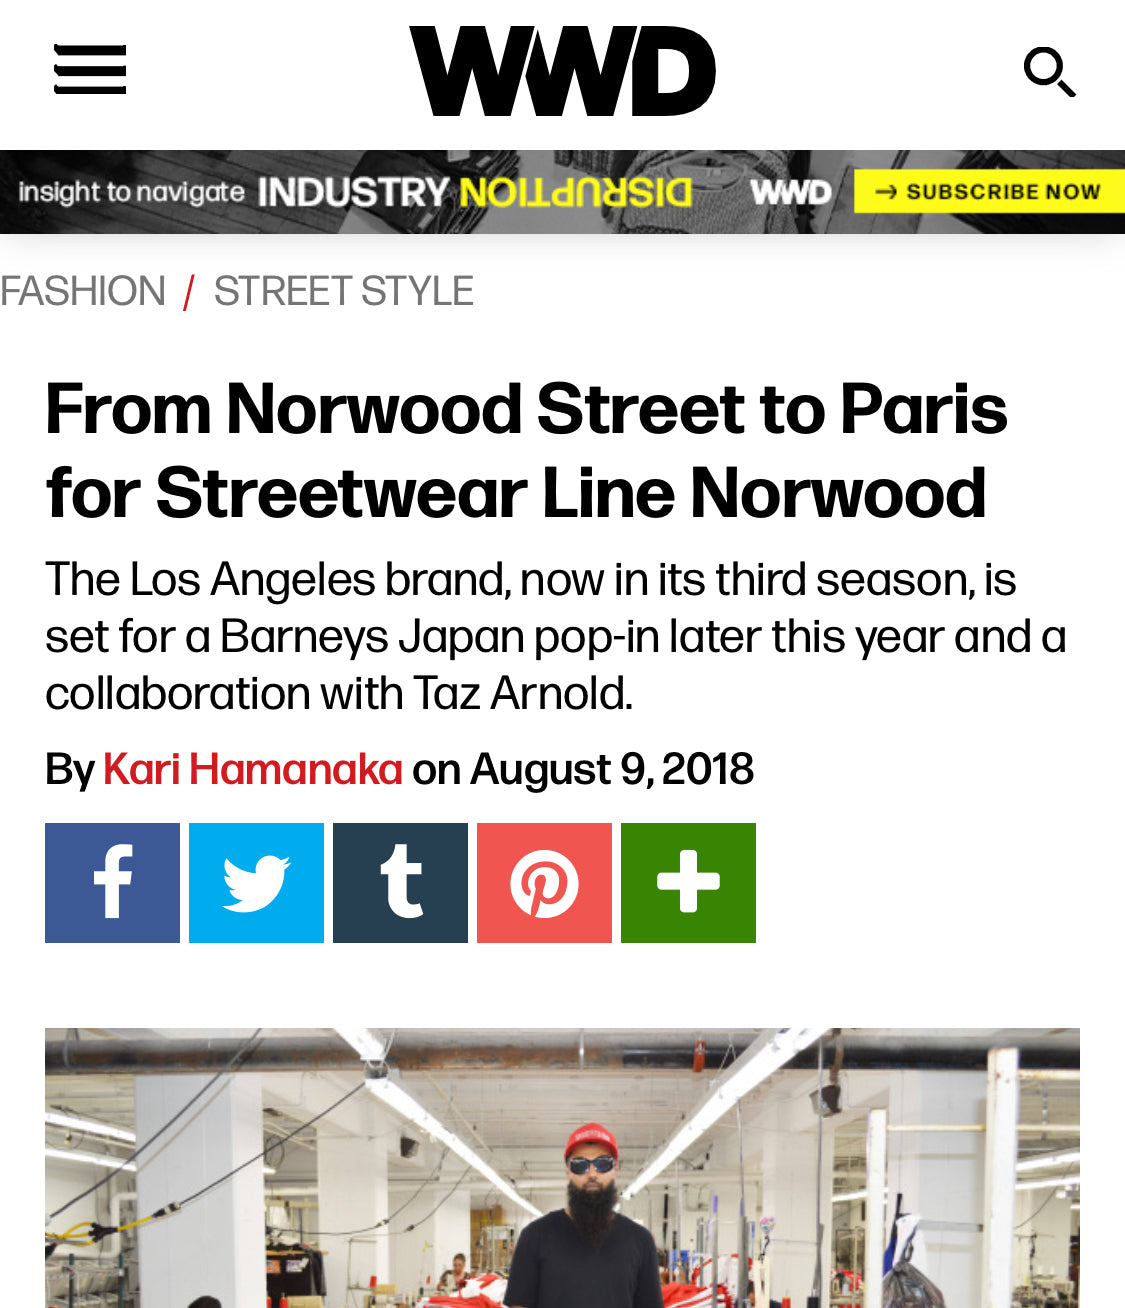 From Norwood Street to Paris for High-End Streetwear Line Norwood - WWD